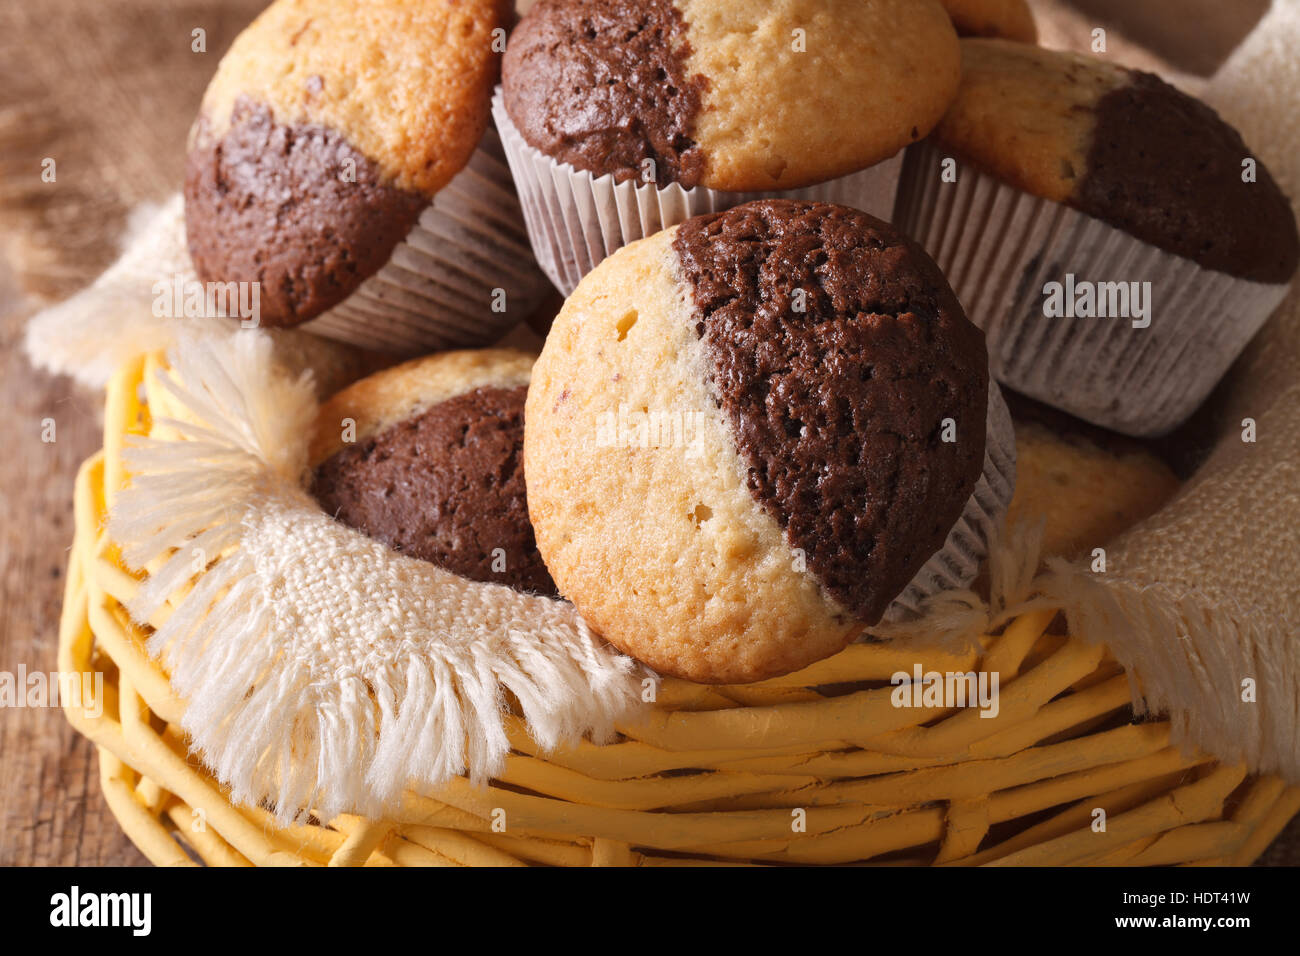 two-tone muffins orange and chocolate close-up in a basket. horizontal - Stock Image